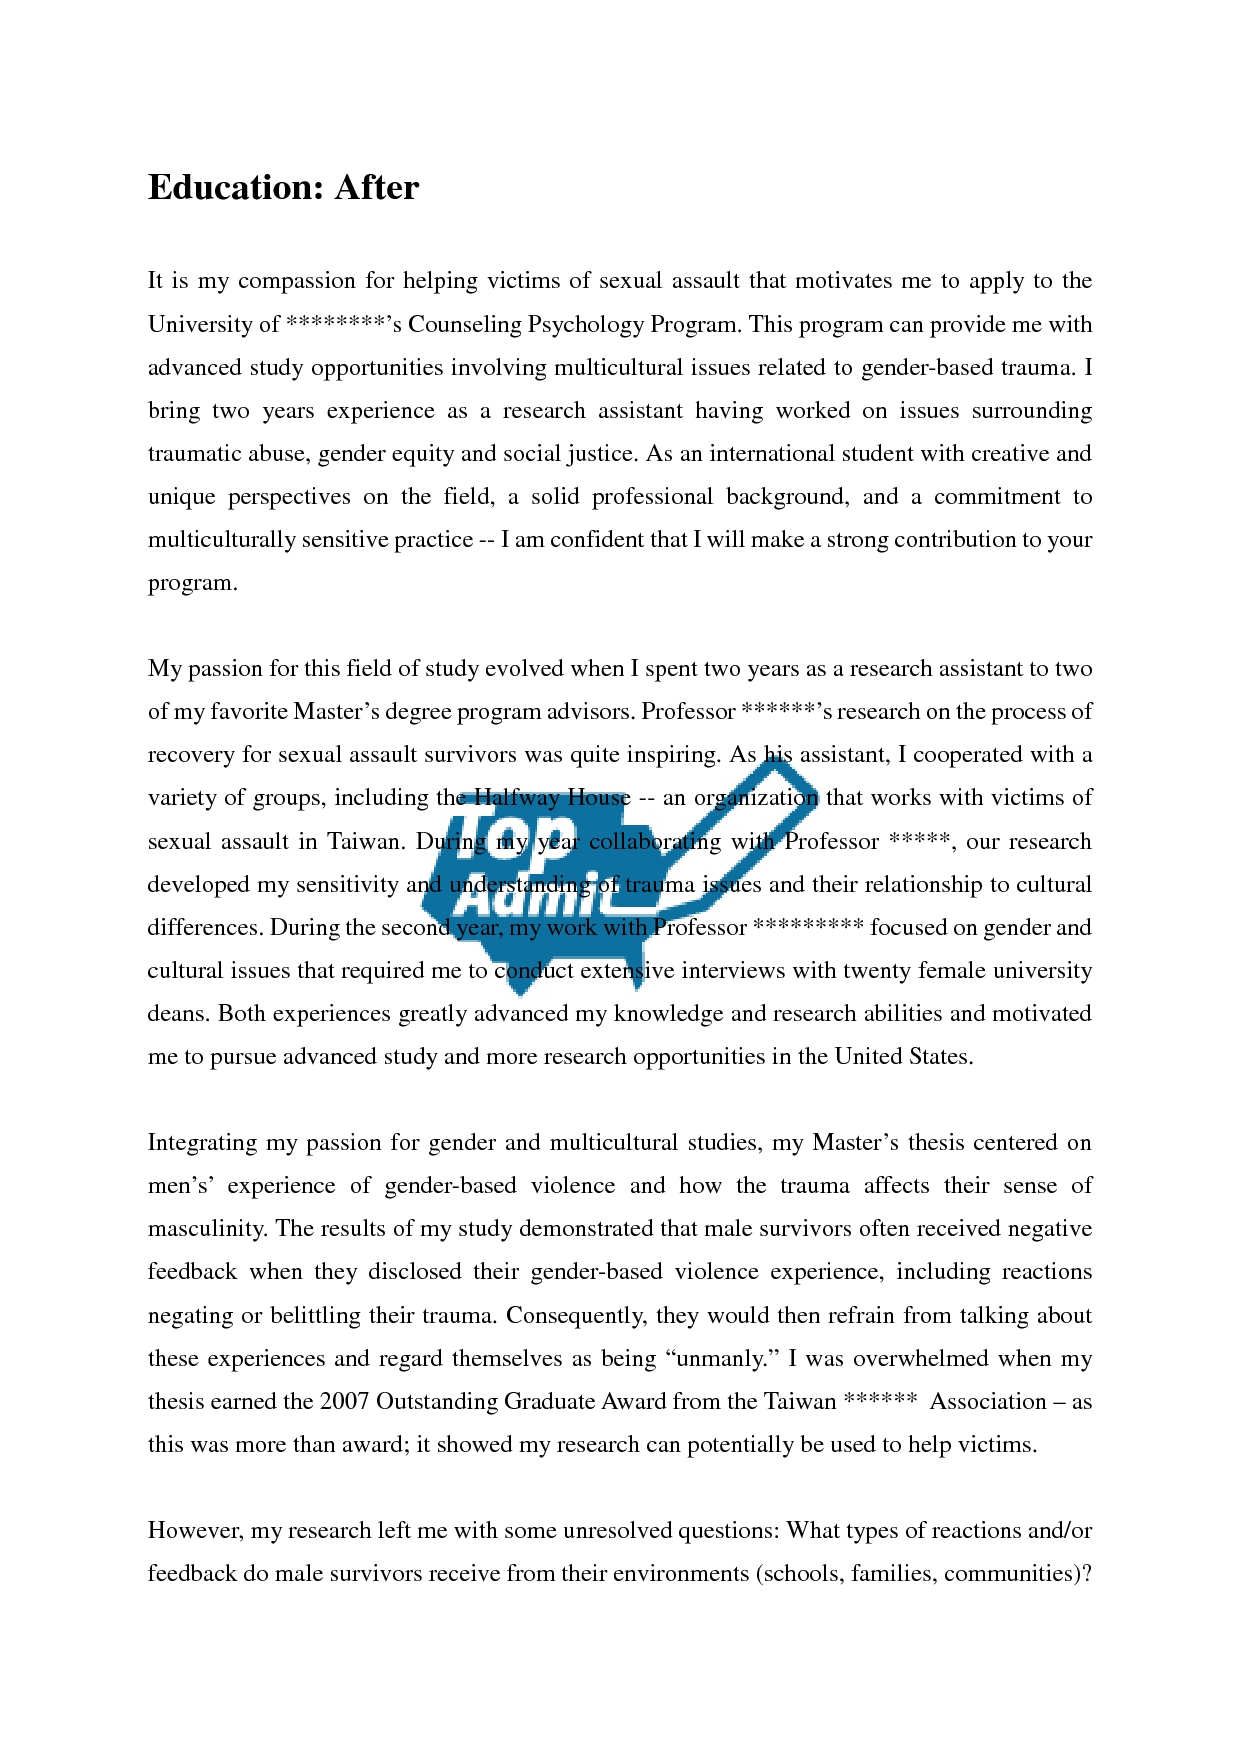 Mark Twain Essay Healthy Food Vs Unhealthy Food Essays First Person Essay Example also Last Year Of High School Essay Essay On Computers Are Important In Education Jewish Wedding  Lincoln Essay